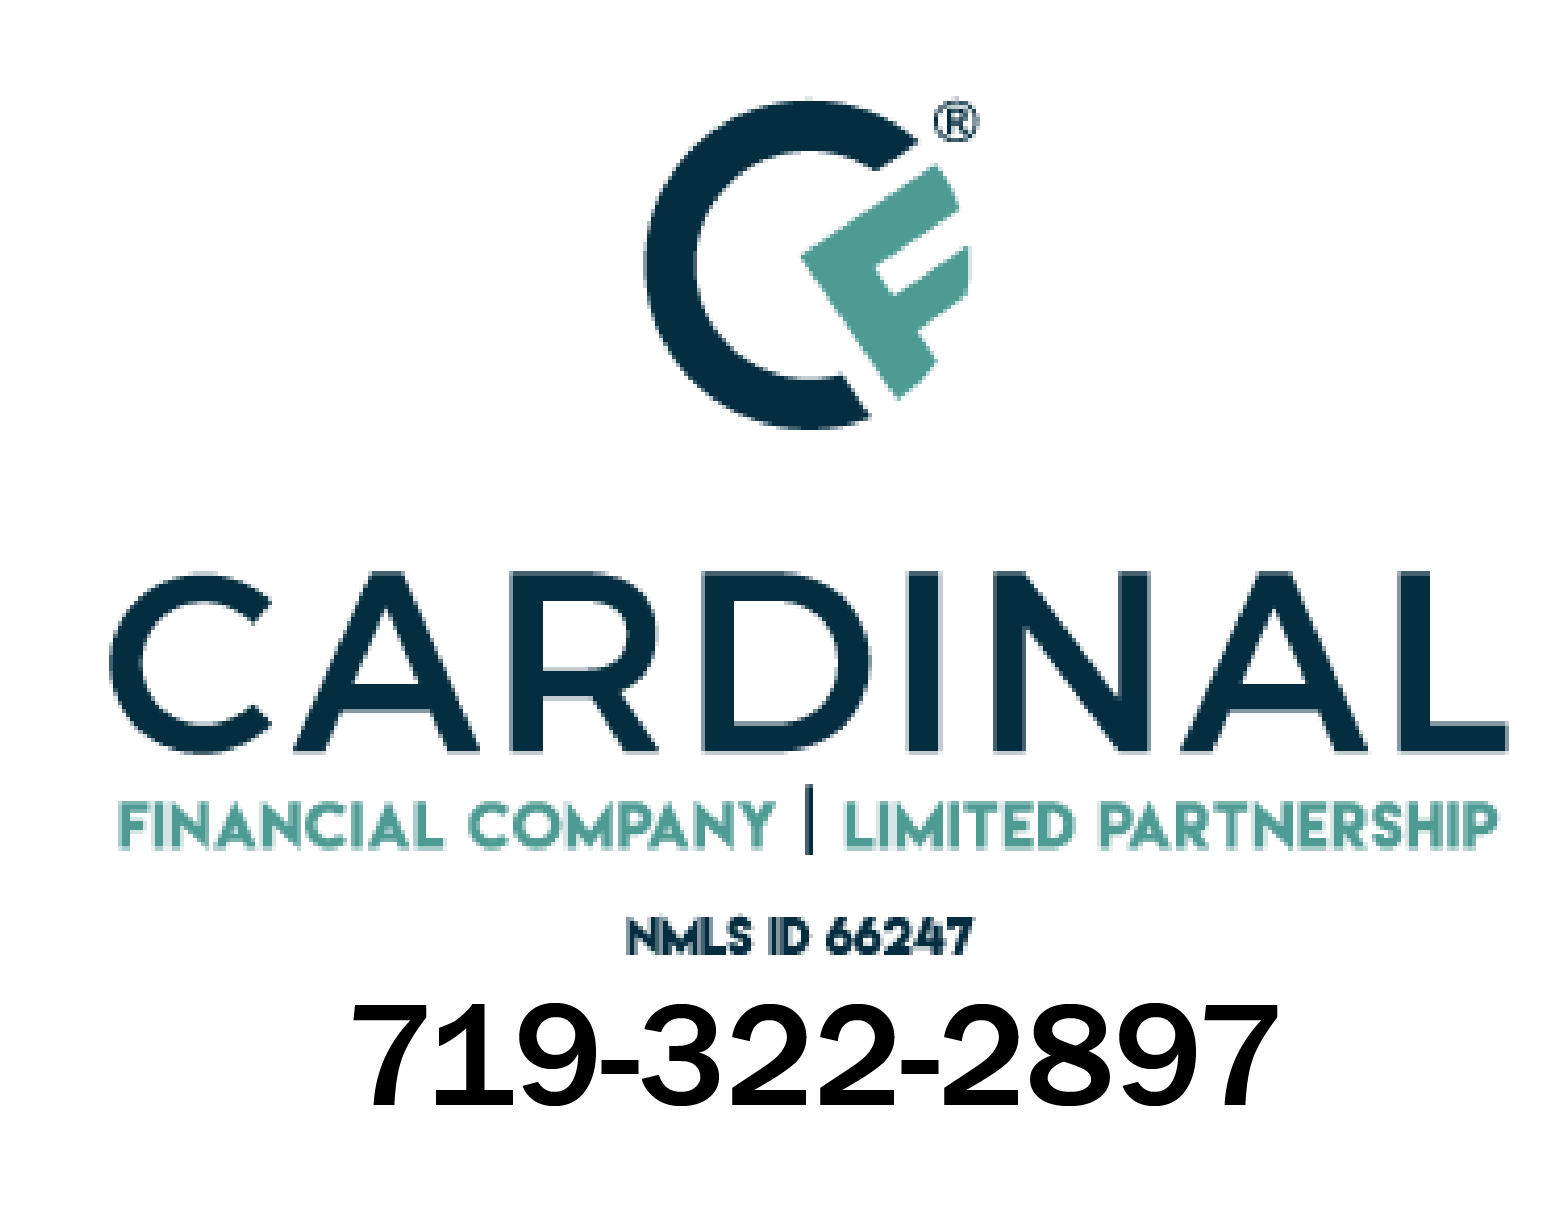 Cardinal Financial Company Limited Partnership 719-322-2897